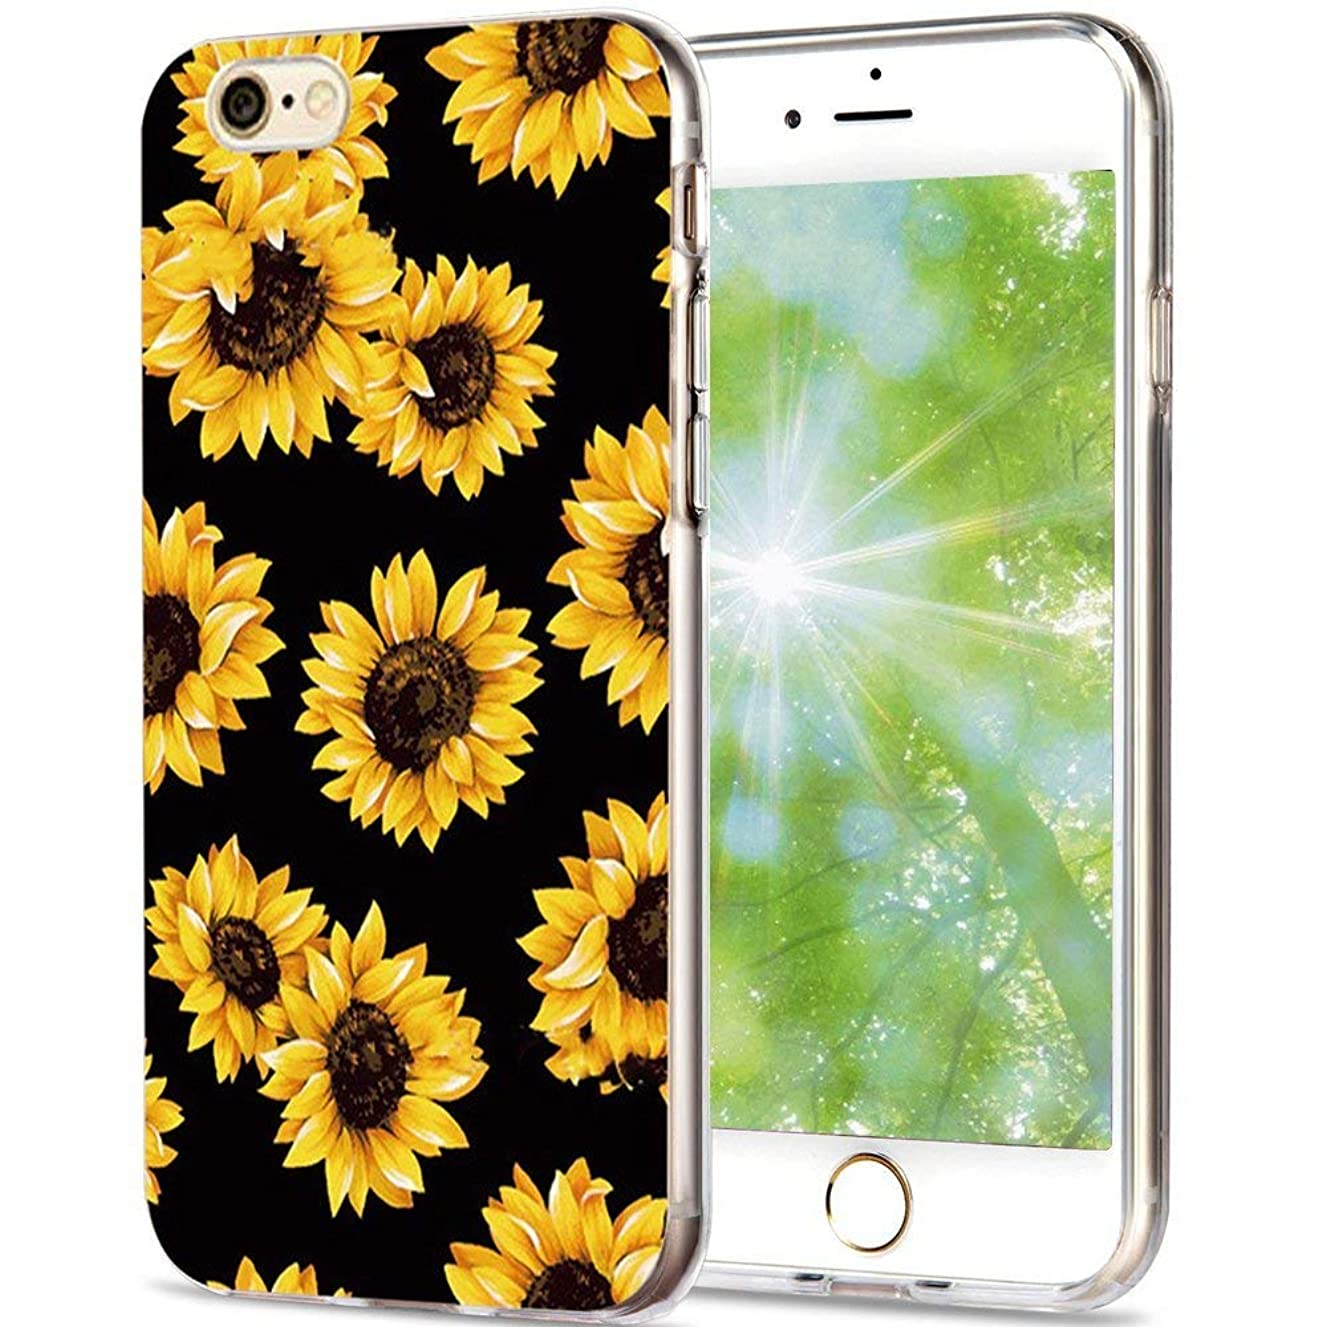 iPhone 6s case, iPhone 6 case, AIKIN Simply Designed Flower Pattern Case Soft TPU Flexible Case Shockproof Protective Cute Case for iPhone 6, iPhone 6s 4.7 Inch (Sunflower + Black)